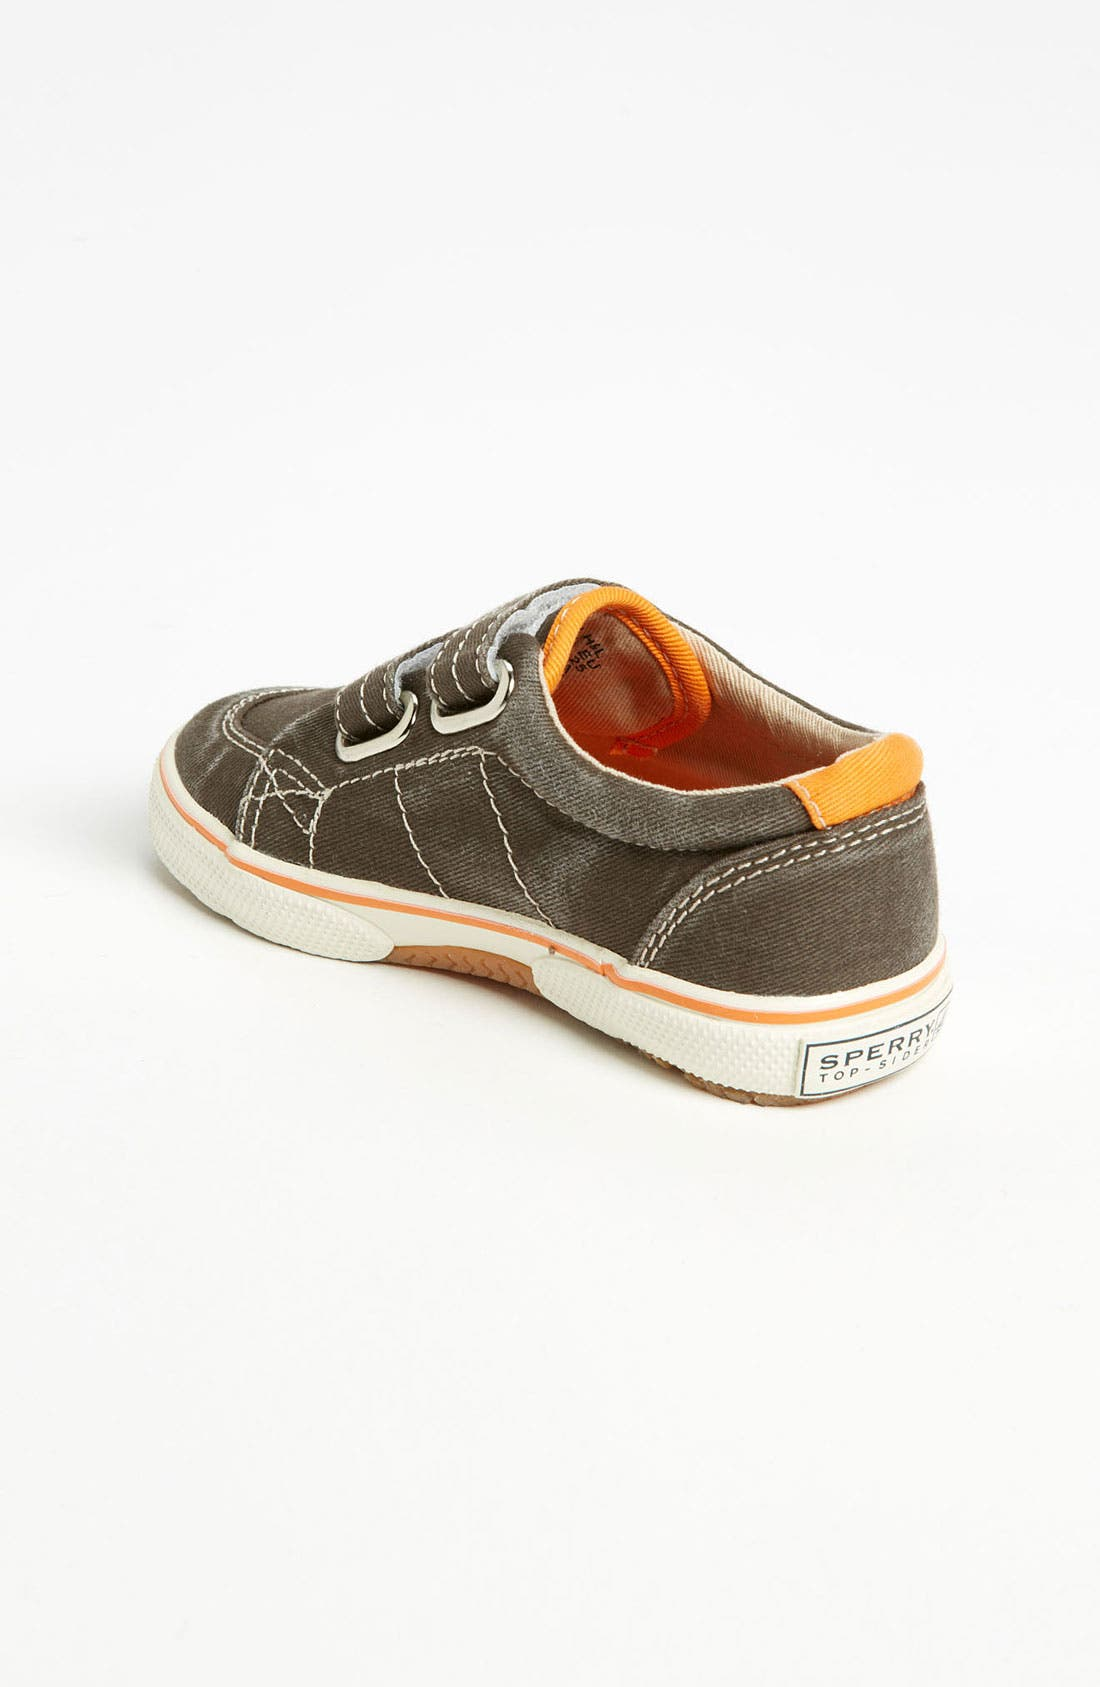 Alternate Image 2  - Sperry Top-Sider® Kids 'Halyard' Sneaker (Walker & Toddler)